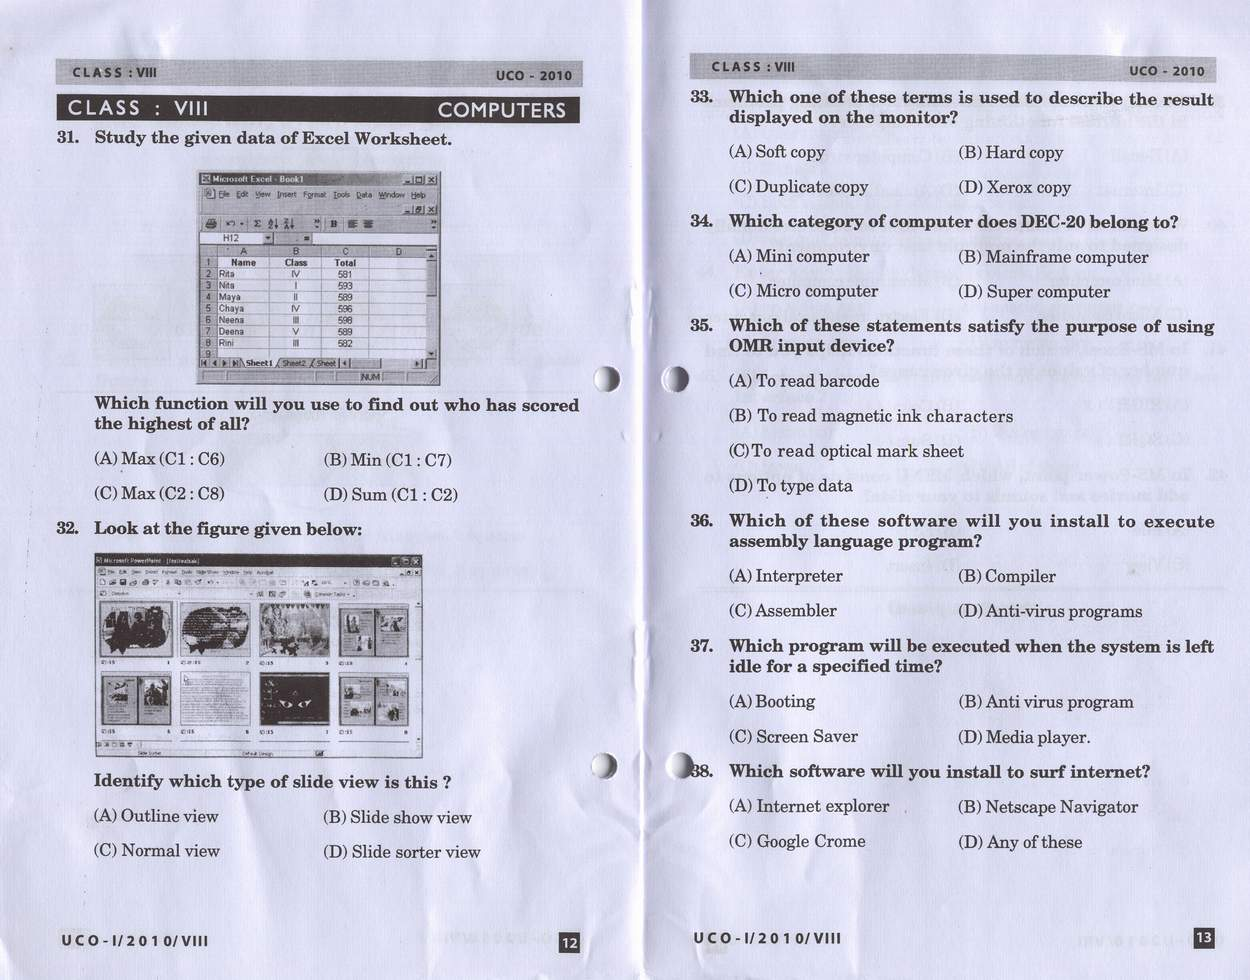 Cbse uco 2010 class viii unified cyber olympiad computer 08 unified cyber olympiaduco 2010 computer science paper for class viii download malvernweather